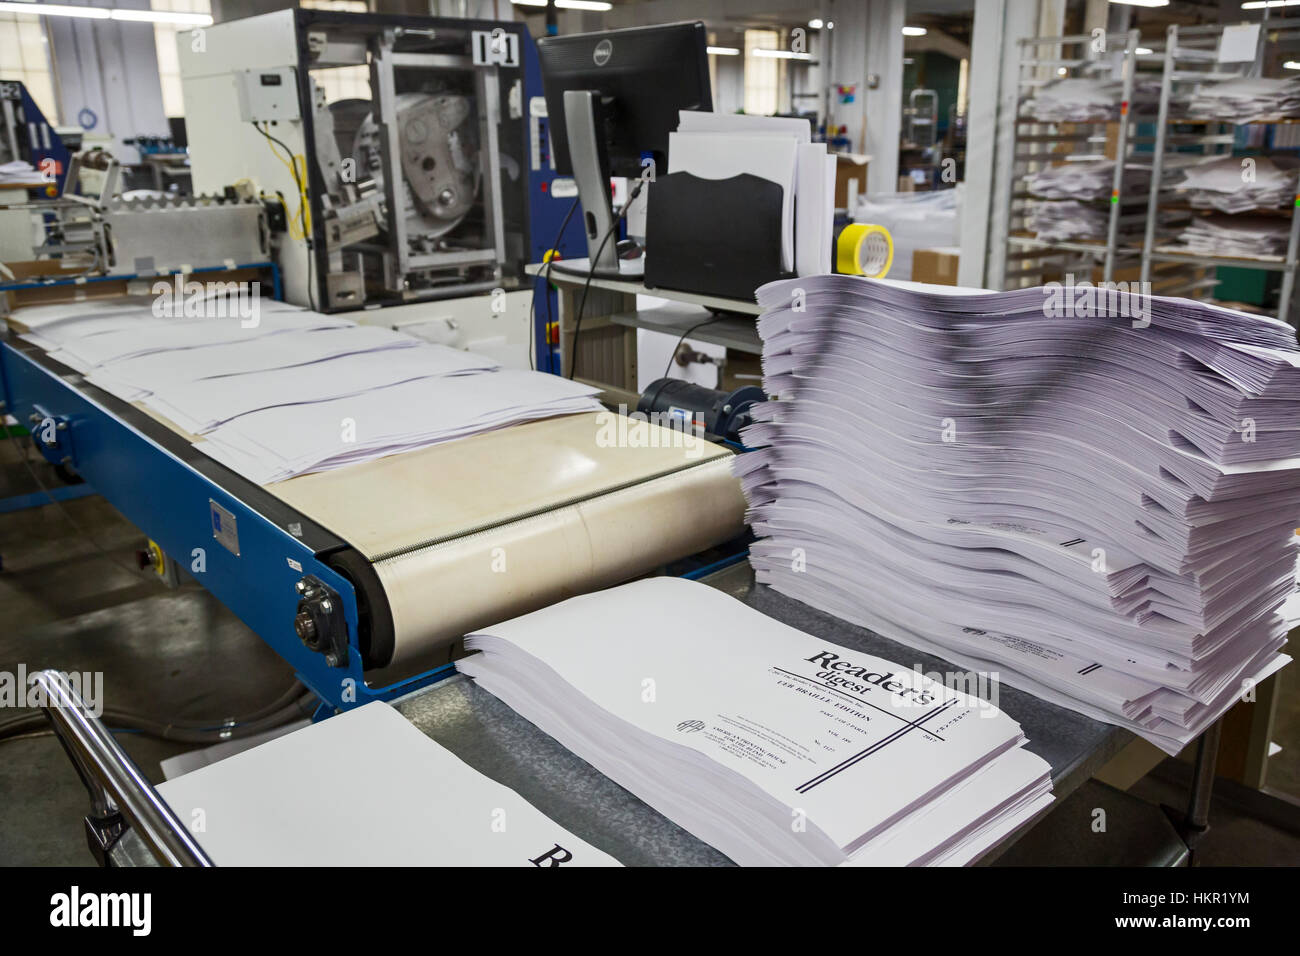 Louisville, Kentucky - The American Printing House for the Blind, which prints braille books and other products - Stock Image